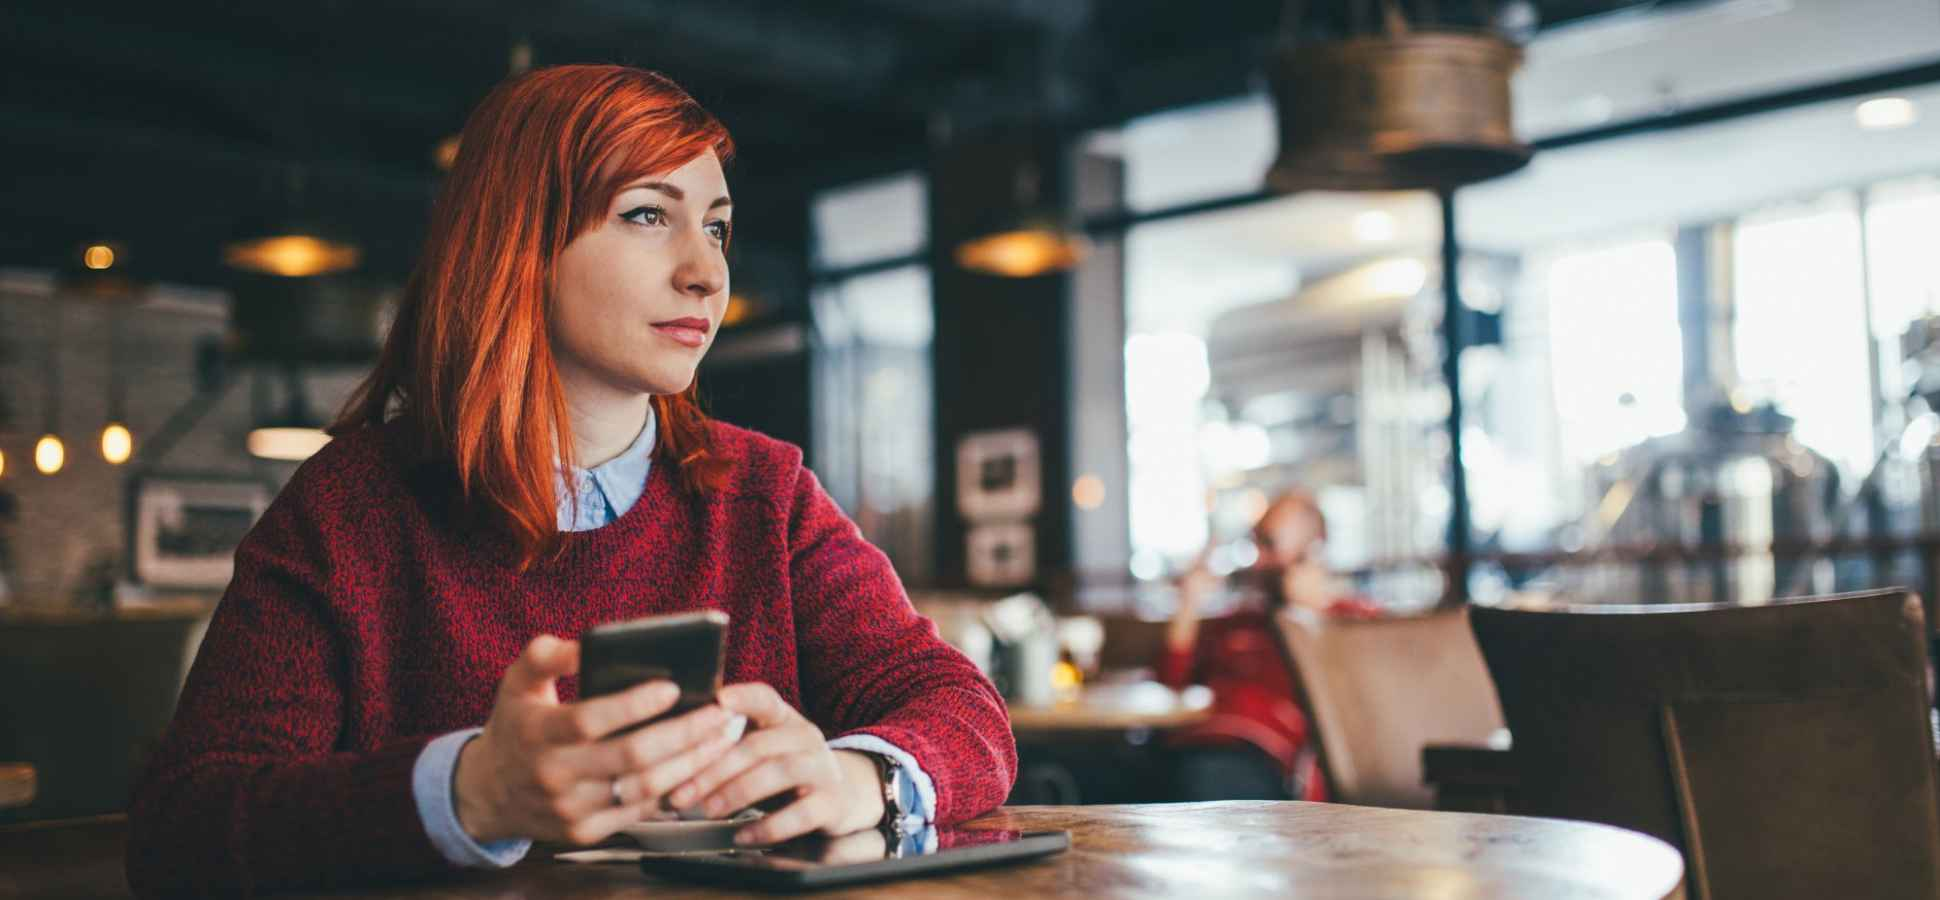 How Marketers Can Connect With Technology-Distracted Millennial Shoppers